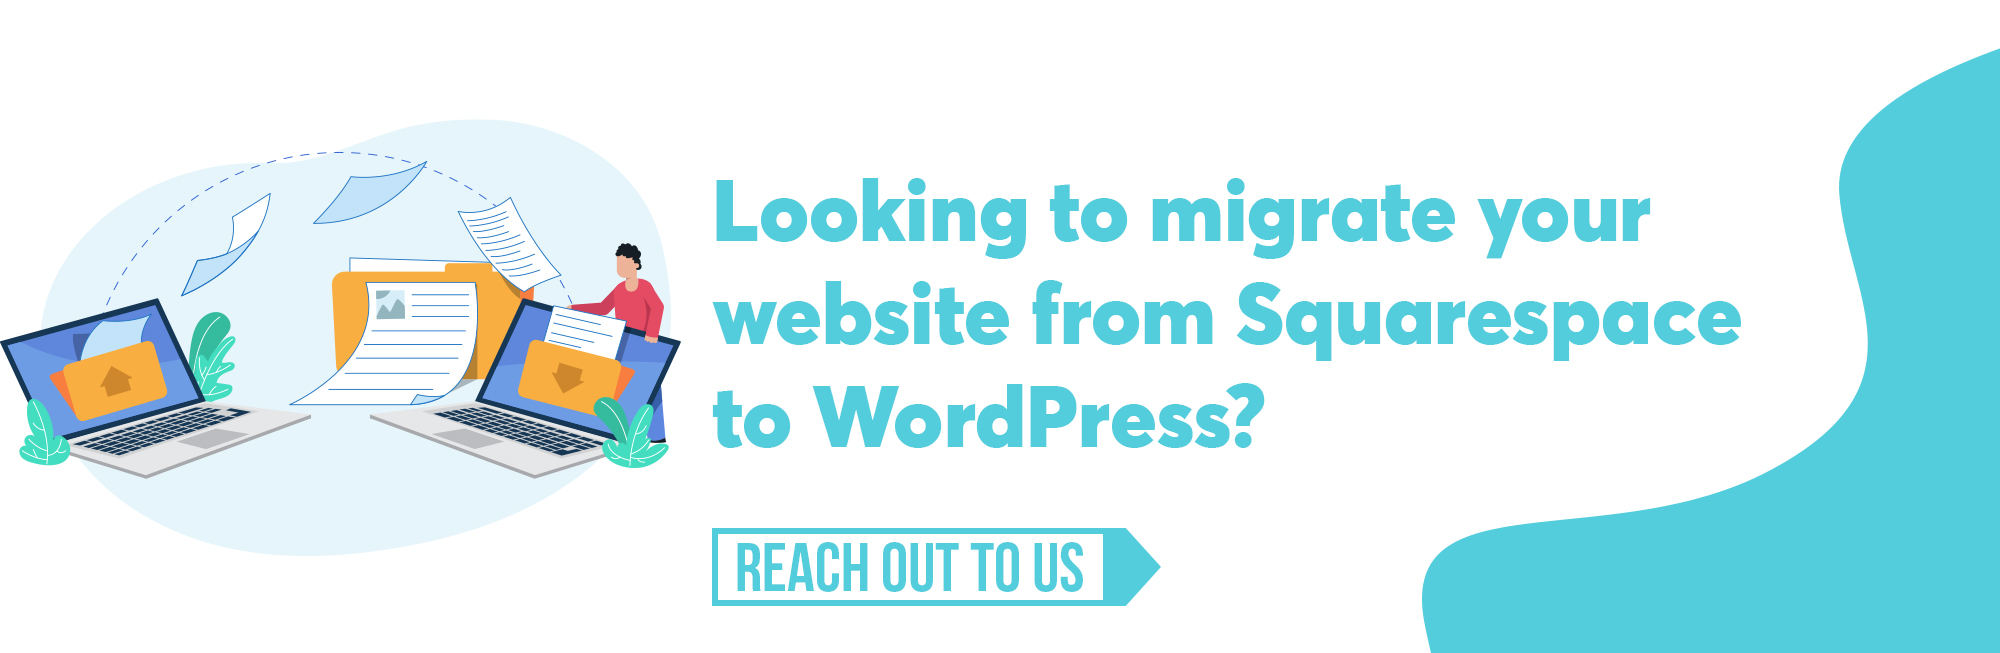 How-to-migrate-from-Squarespace-to-WordPress-CTA